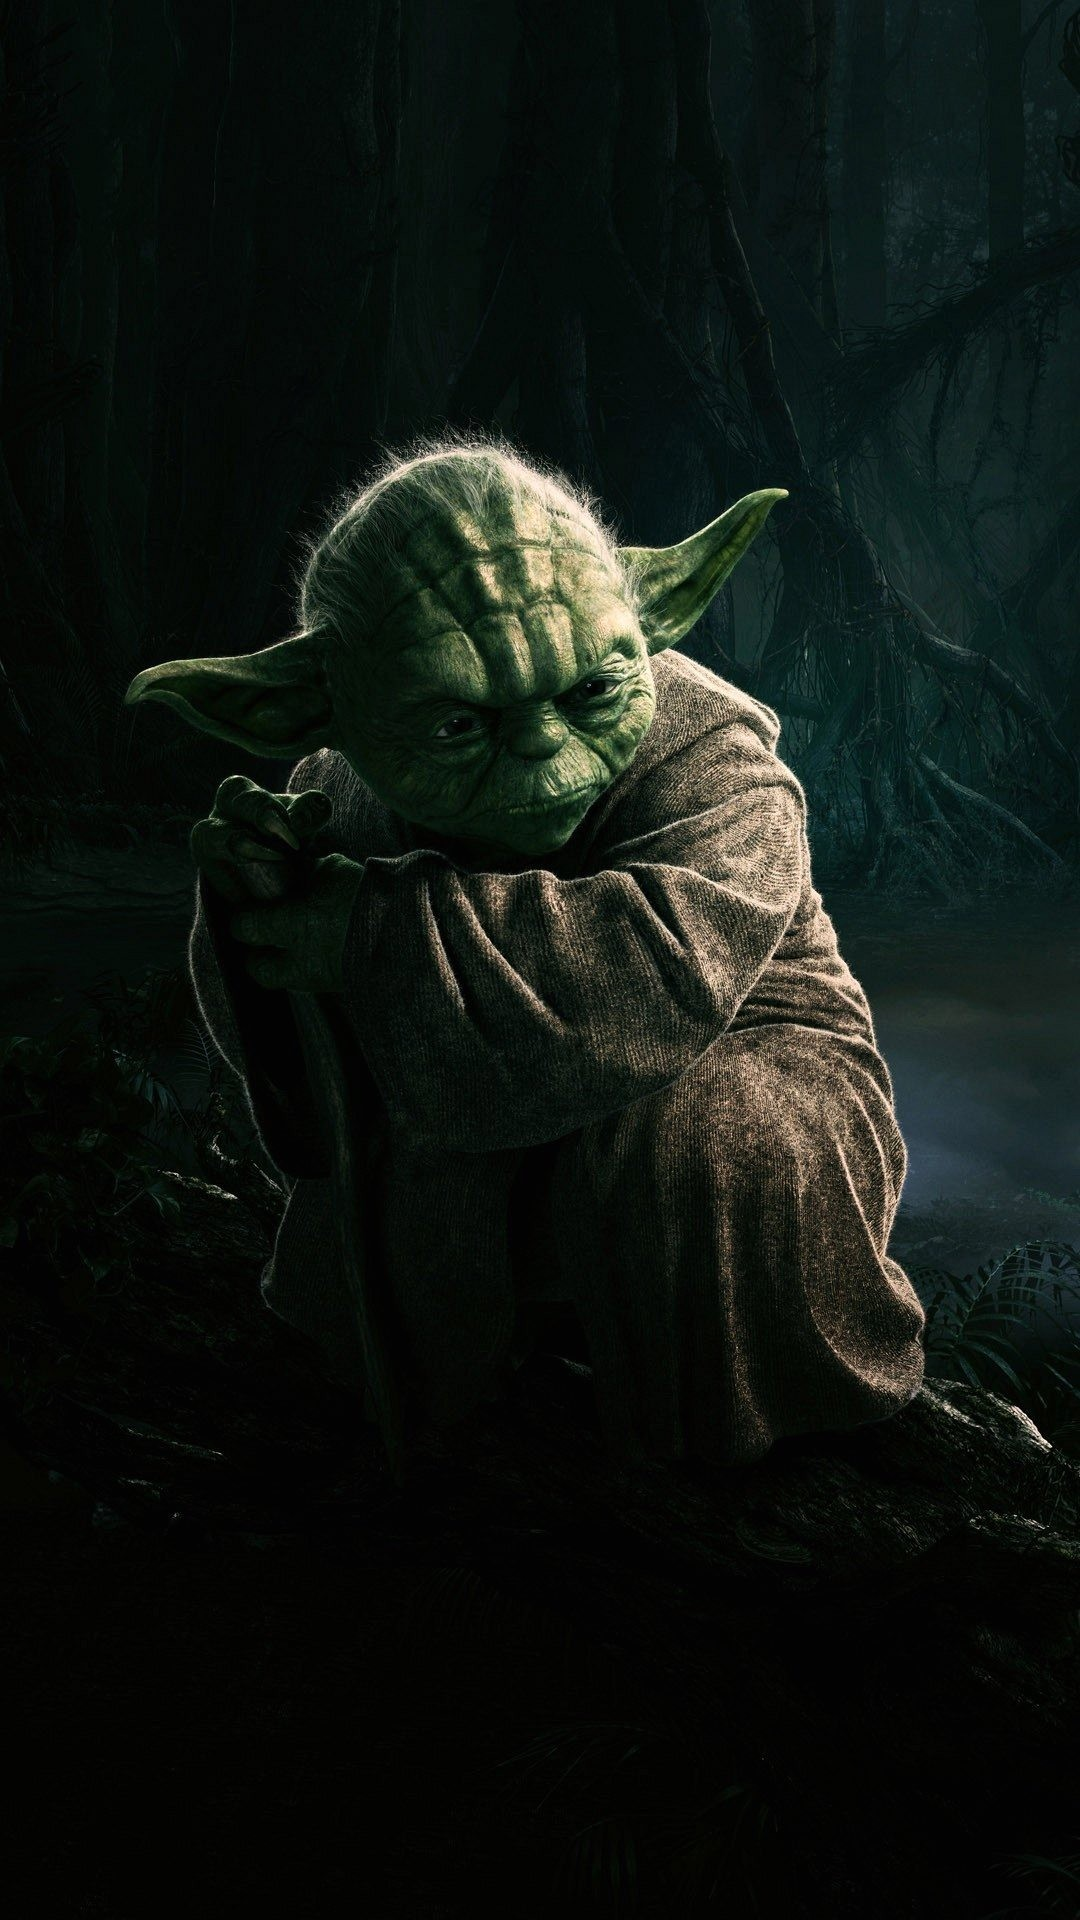 1080x1920 Yoda Star Wars Wallpaper photos of Epic Star Wars Iphone Wallpaper: by .